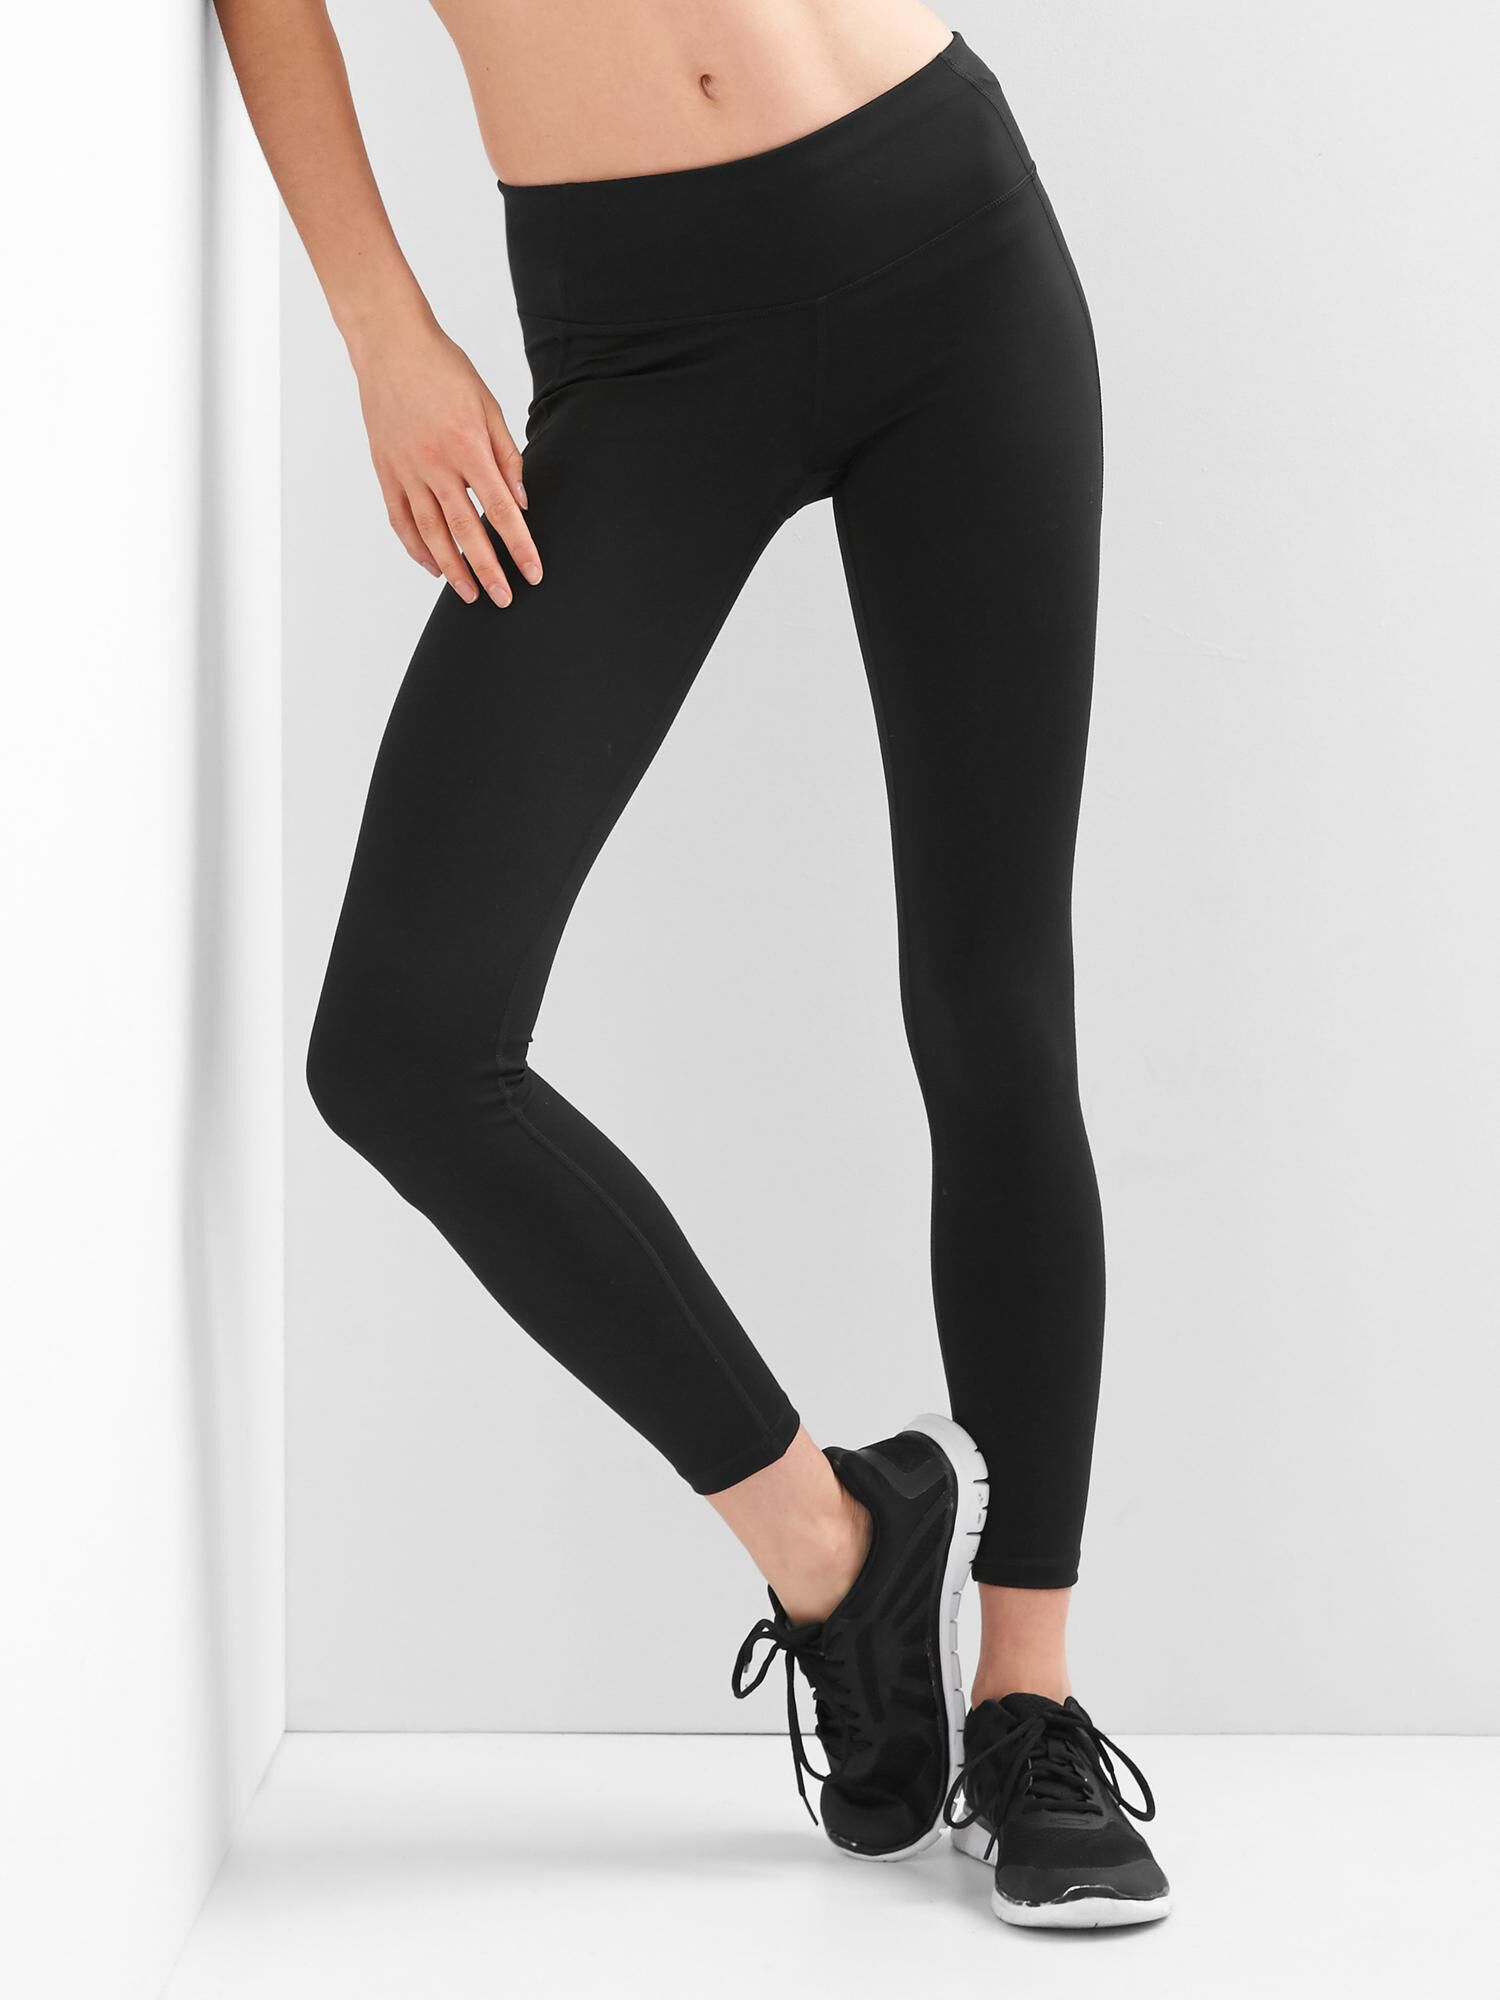 These 20 Leggings Have 2,000 5-Star Reviews recommend